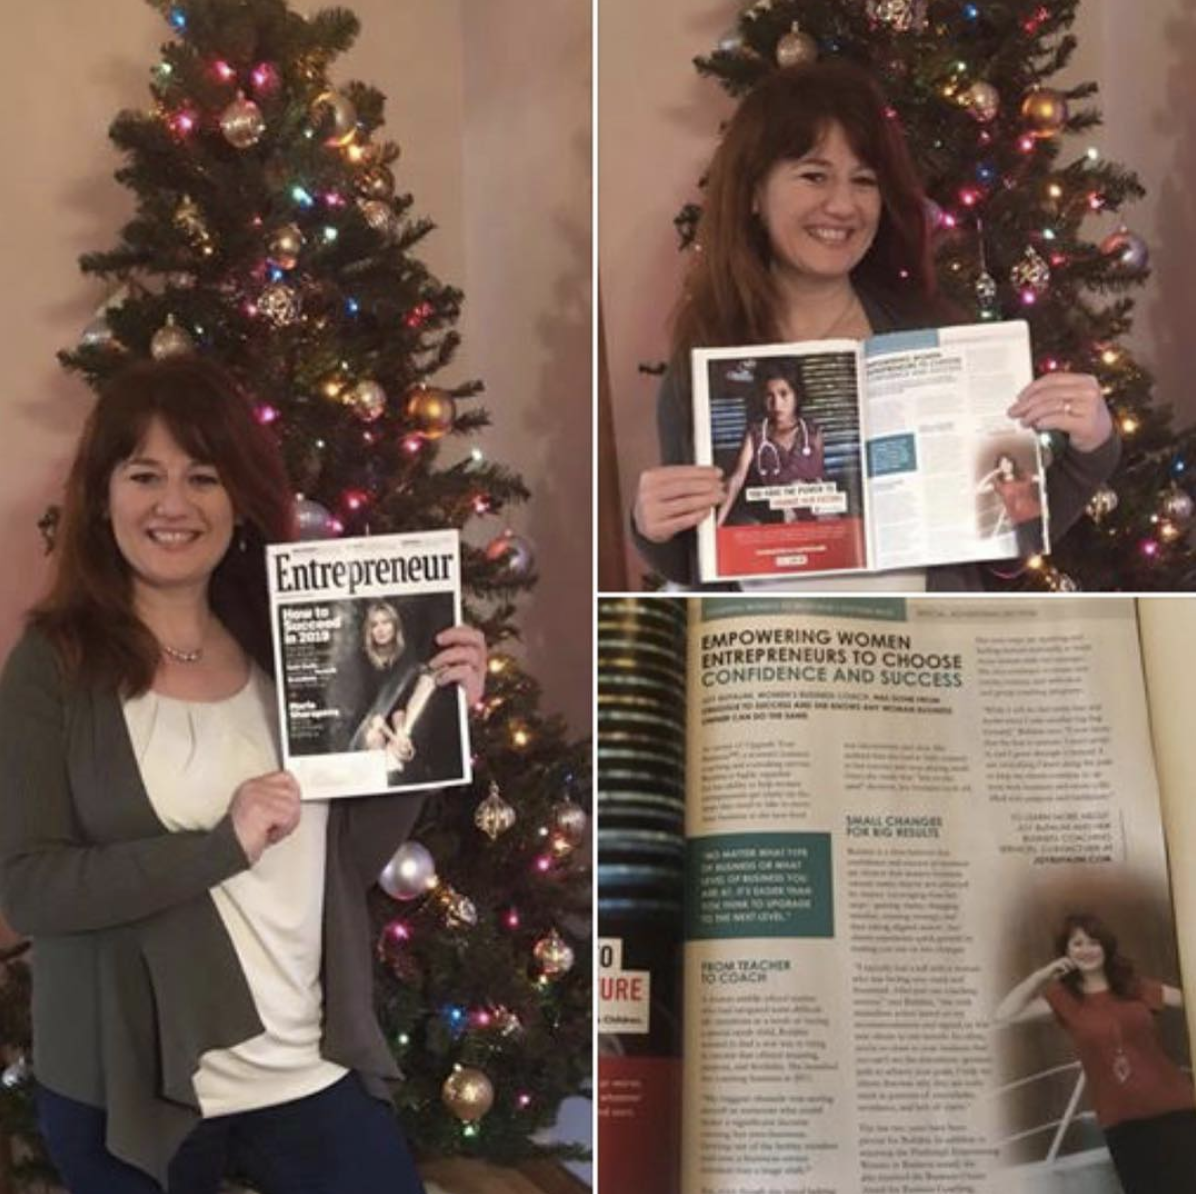 Photo : Instagram post by Joy Bufalini after receiving her copy of Entrepreneur with her featured story. Best Christmas gift ever!